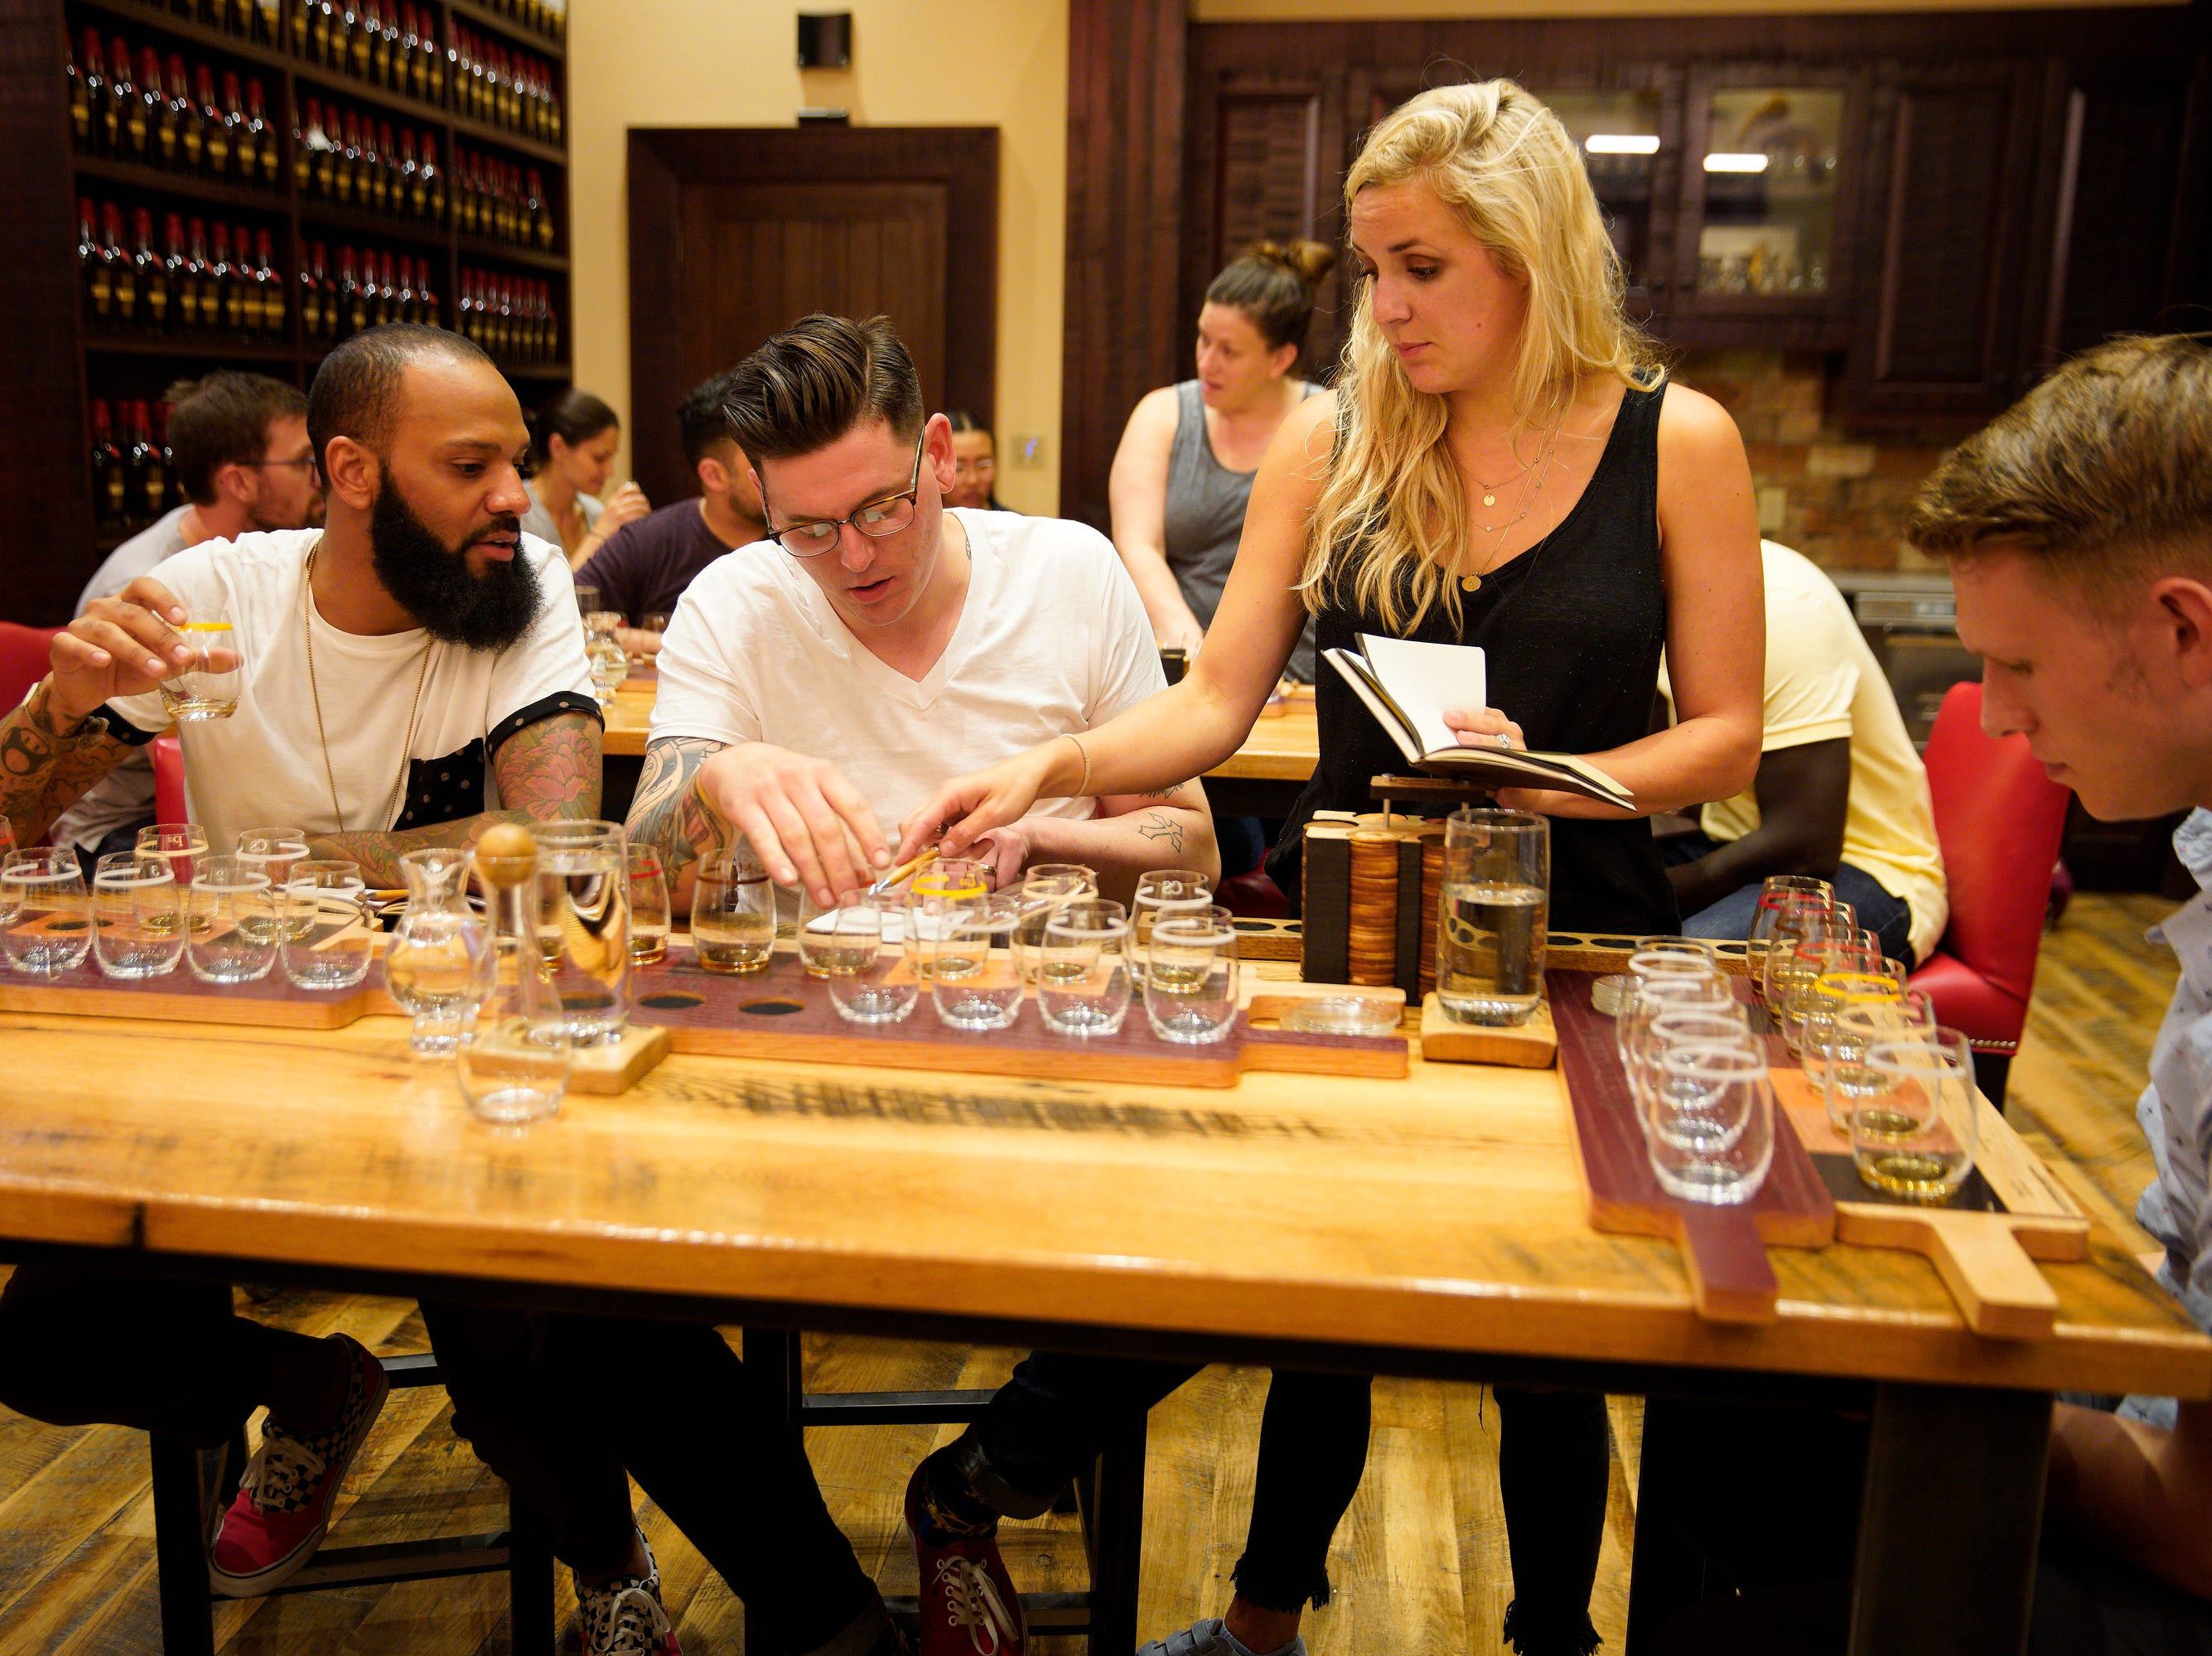 """(Left to right) Chefs Justin Sutherland, Brian Young, Kelsey Barnard and Brandon Rosen taste bourbon at the Maker's Mark distillery on episode 2 of """"Top Chef"""" season 16."""